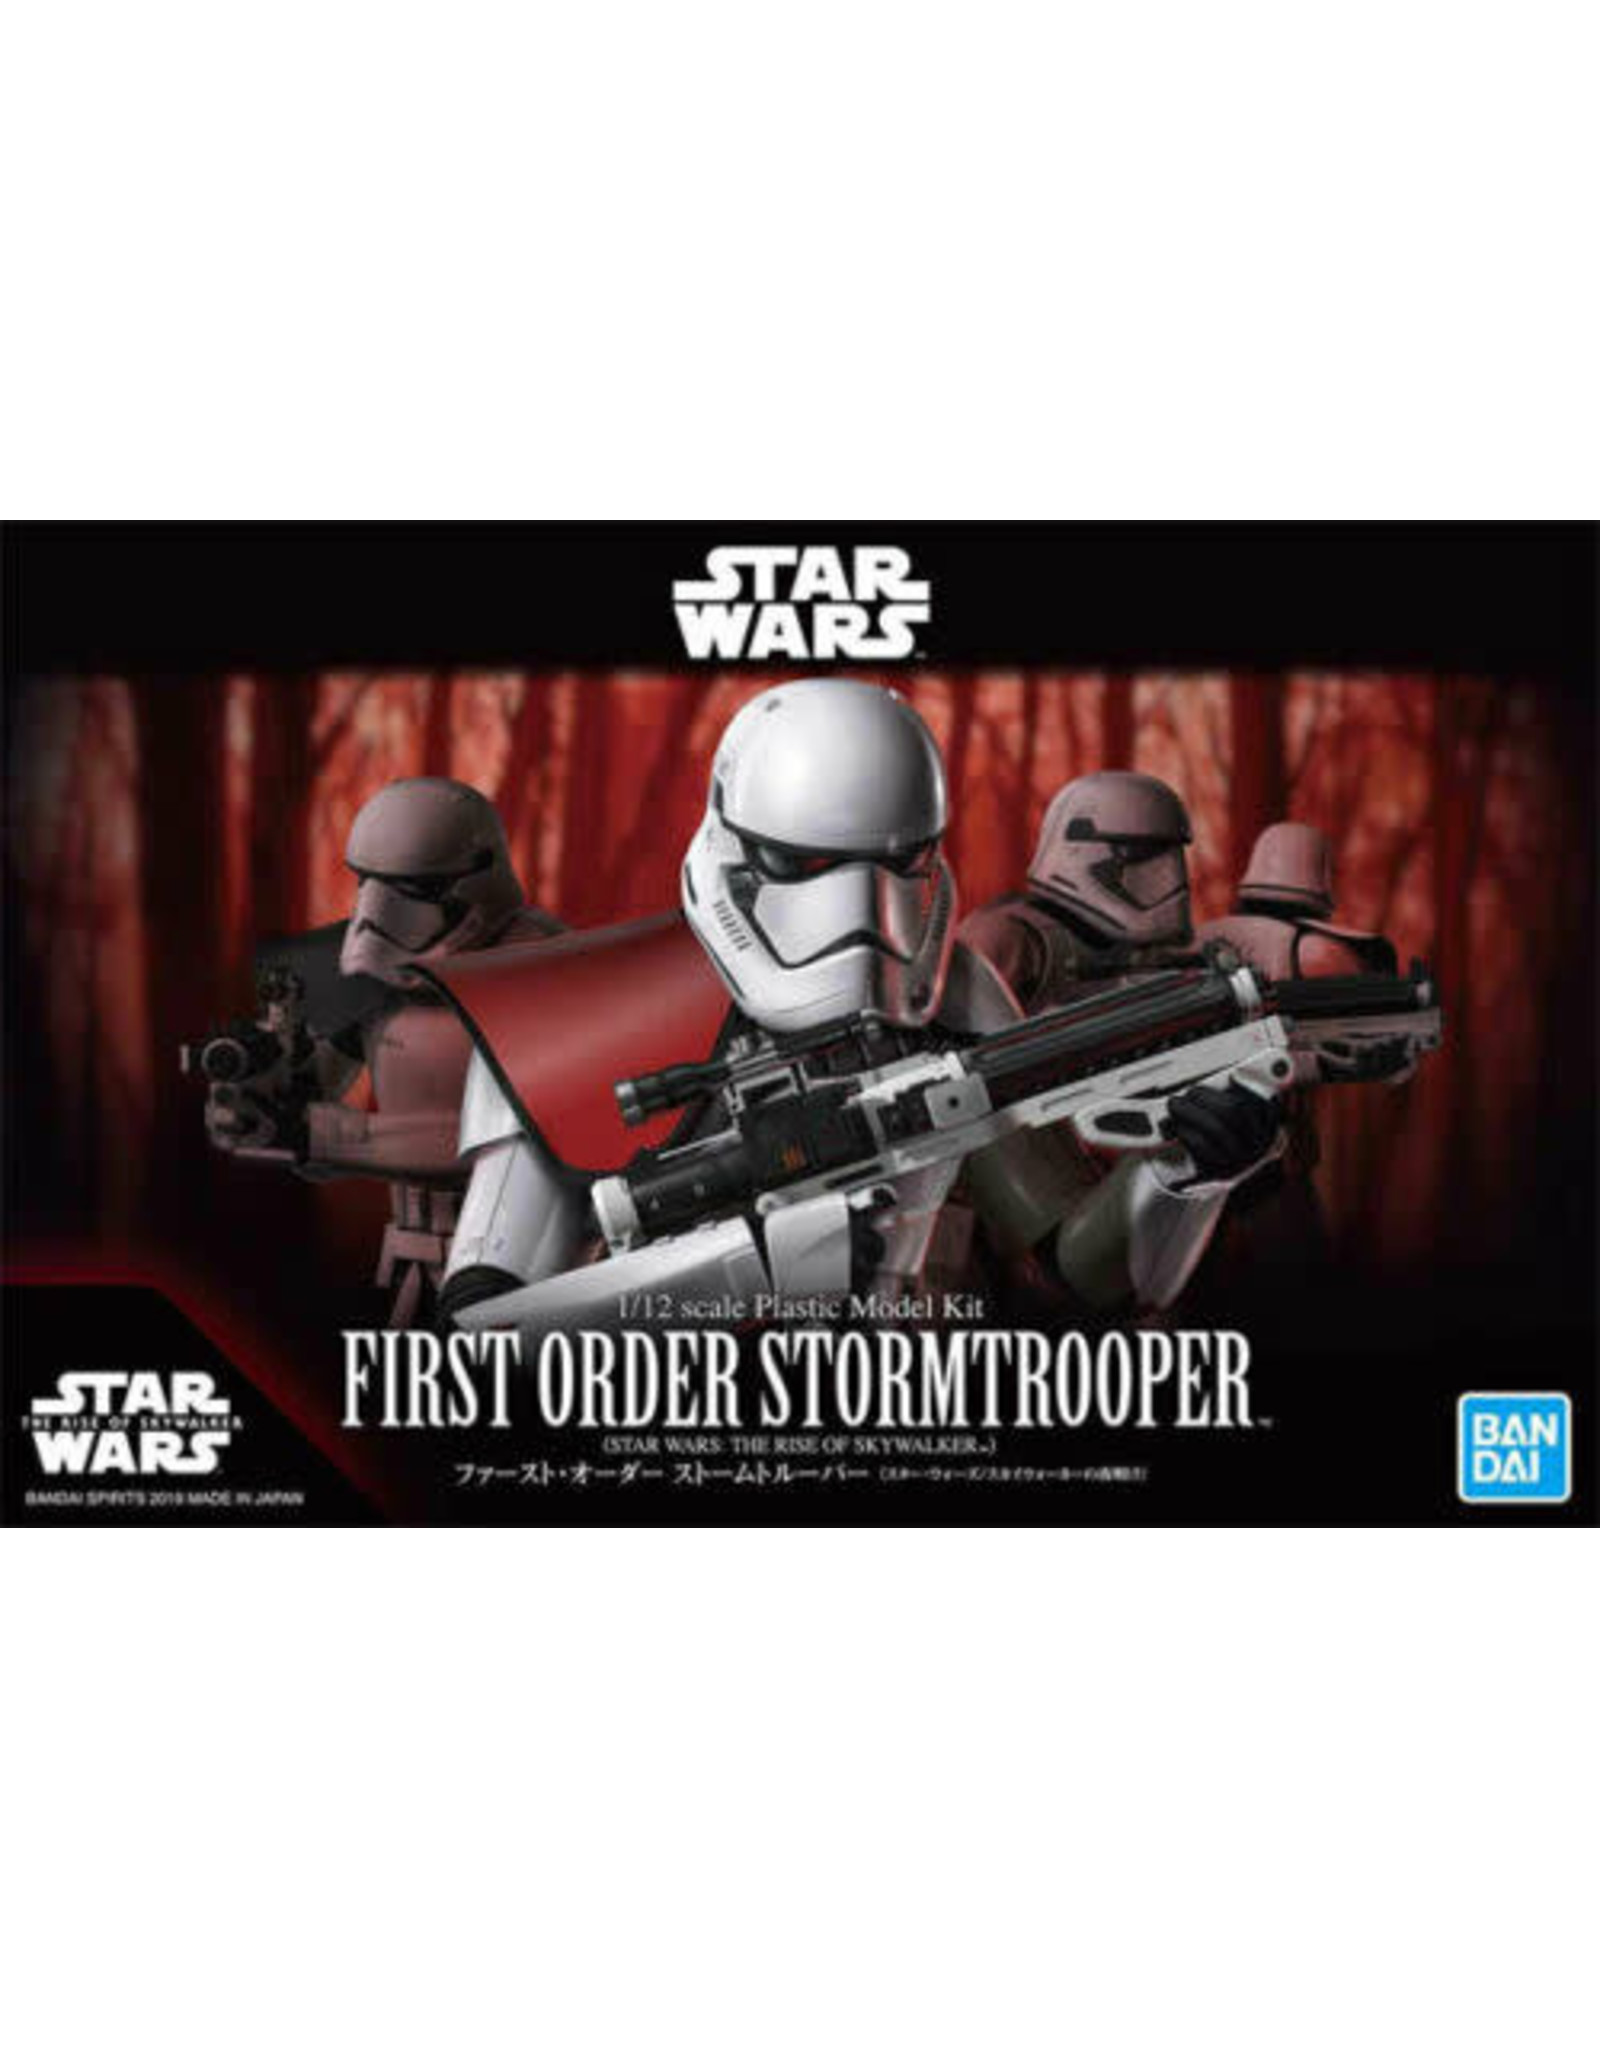 BANDAI 1:12 FIRST ORDER STORMTROOPER (THE RISE OF SKYWALKER)